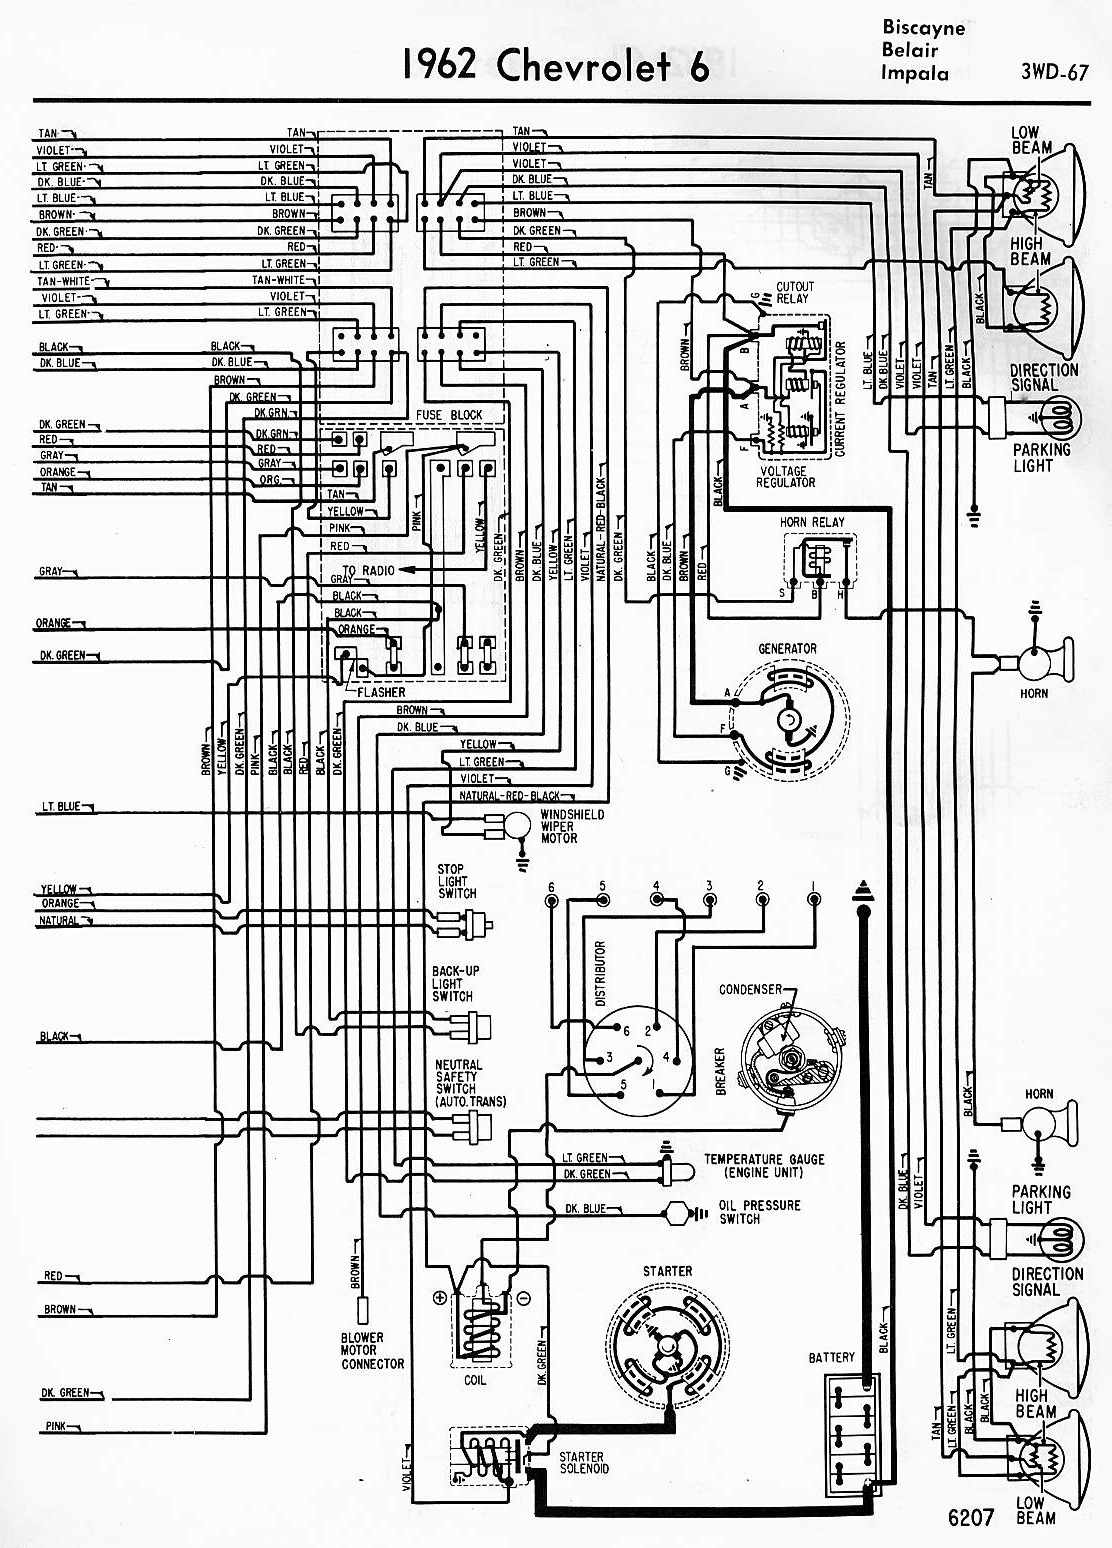 Prime Circuit Diagram As Well Corvette Wiper Motor Wiring Diagram On Letkol Mohammedshrine Wiring Cloud Letkolmohammedshrineorg